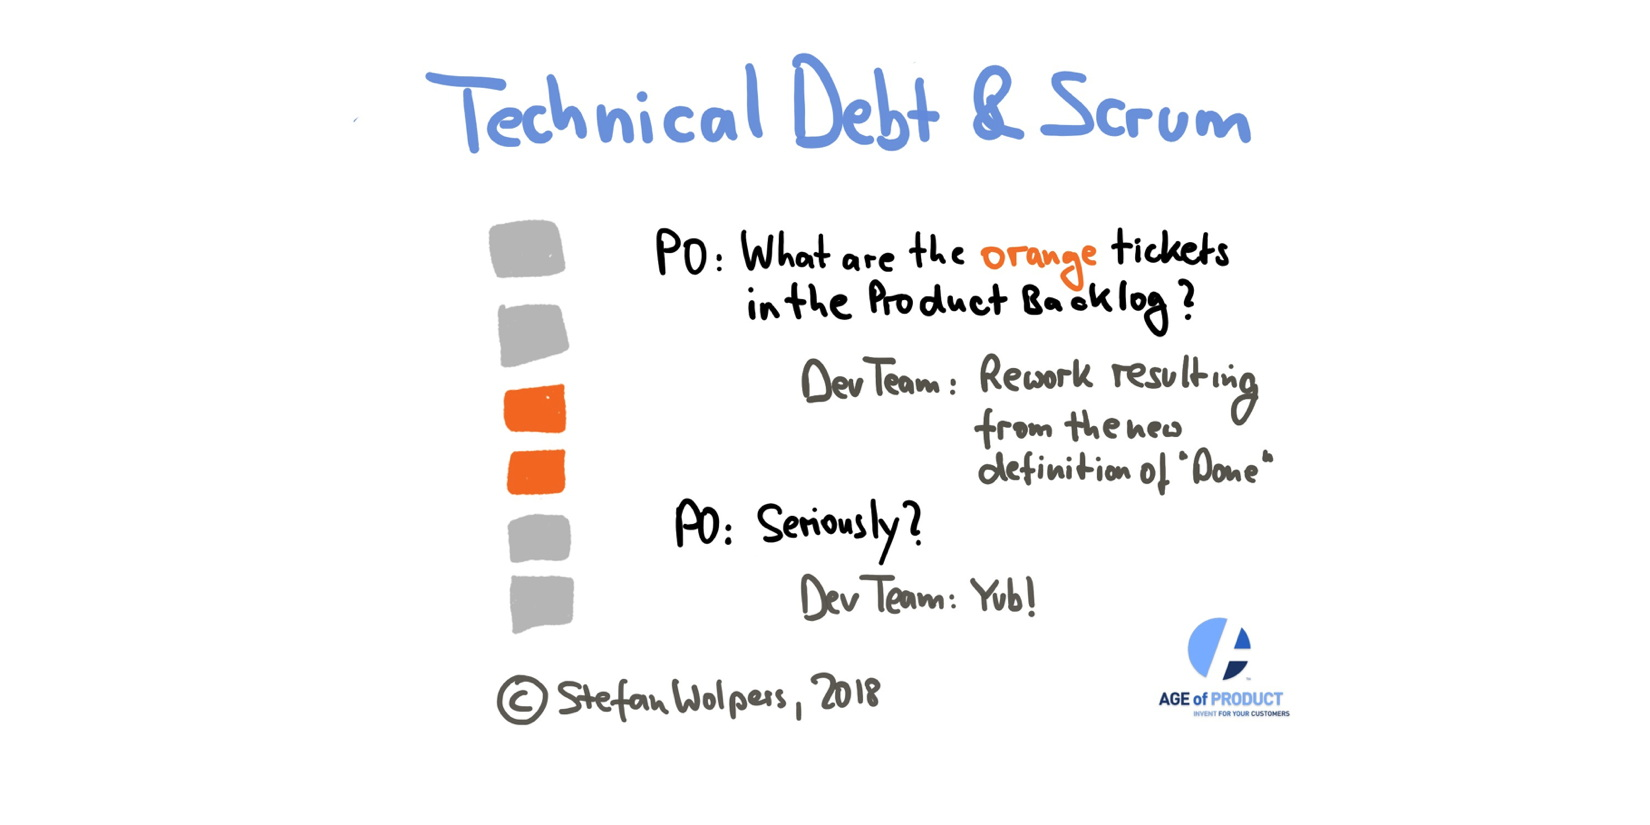 Technical Debt & Scrum: Product Owner and Development Team discussing new Product Backlog items